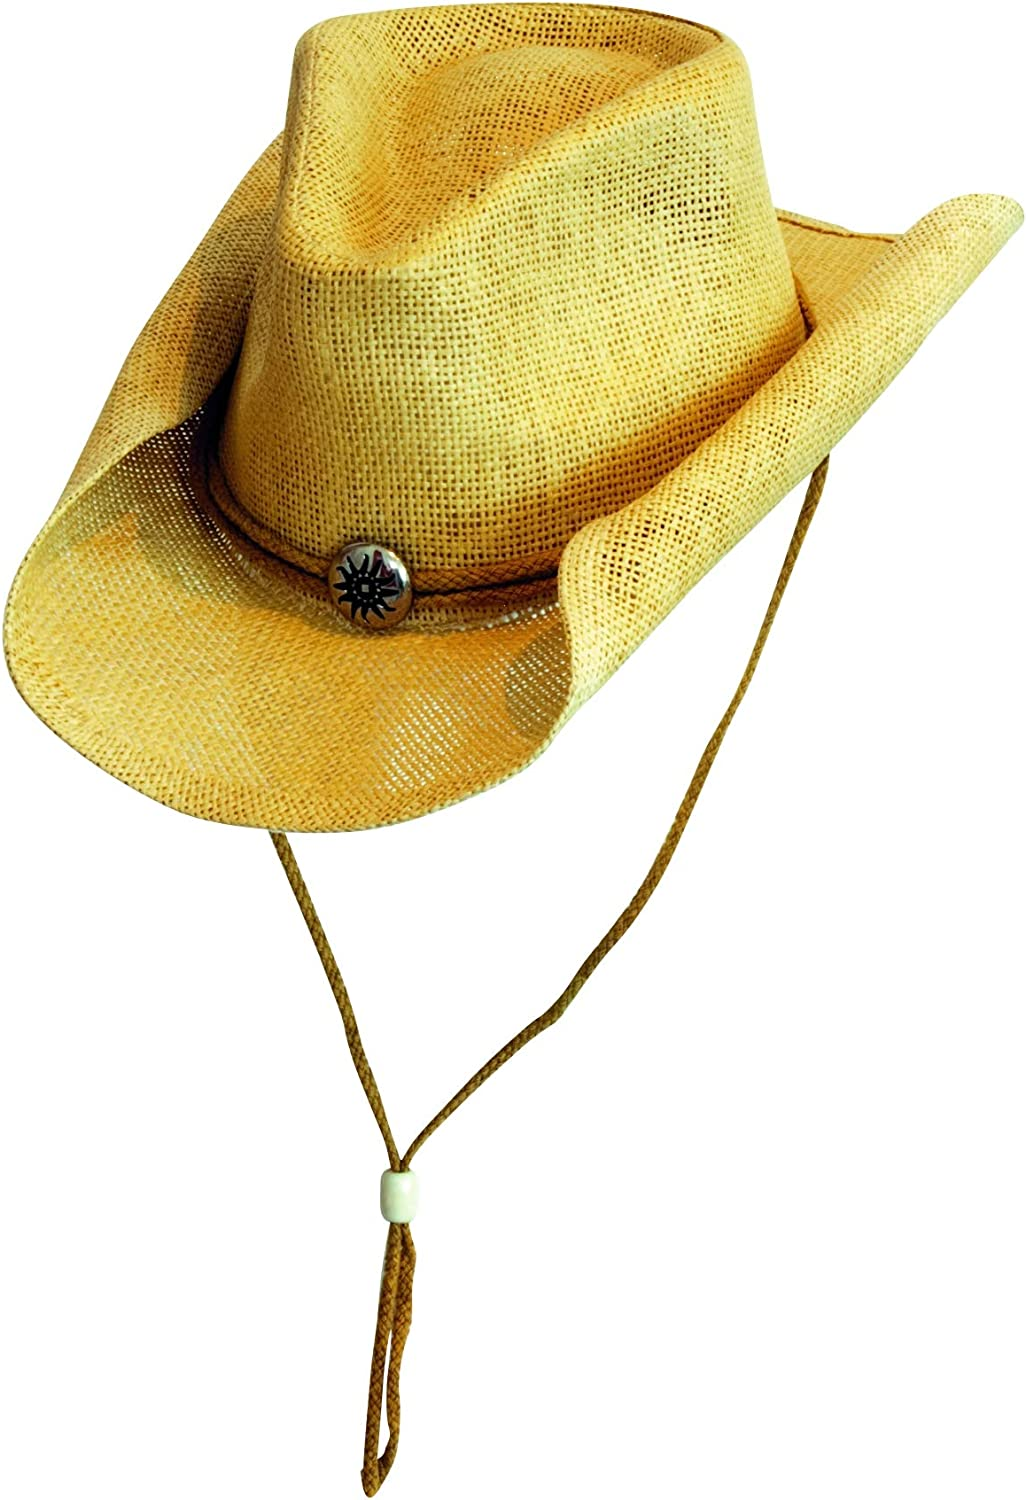 Extra Large Scippis Sunny Western Cowboy Straw Hat Black Large